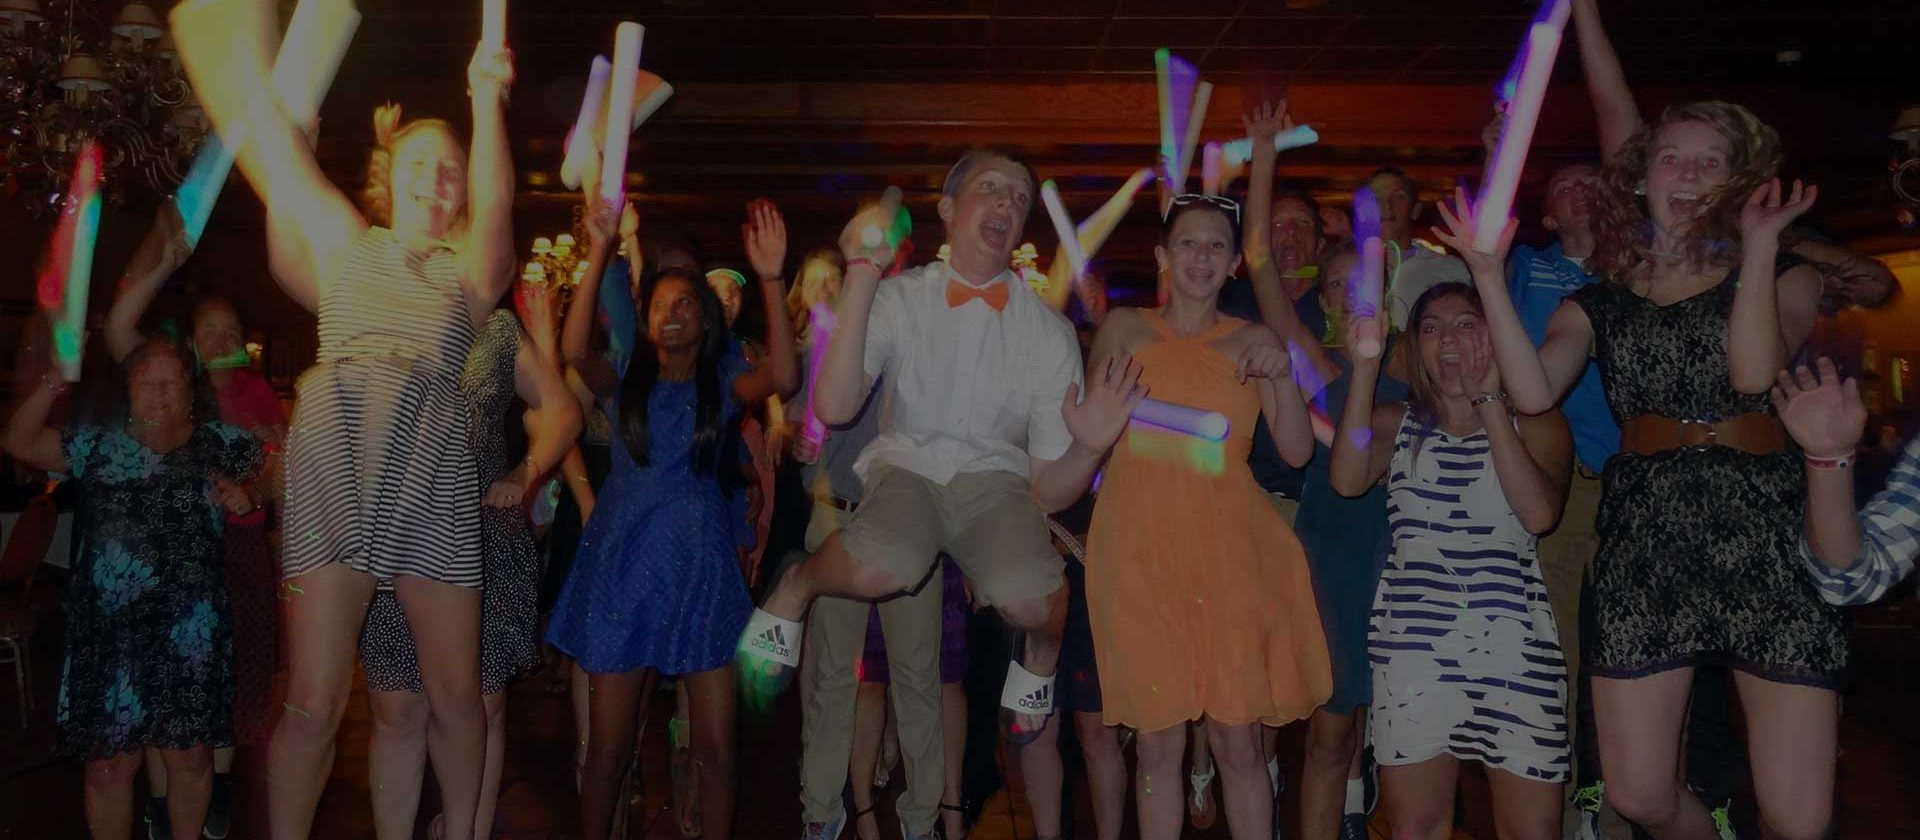 Fun, Energetic Receptions for All Ages